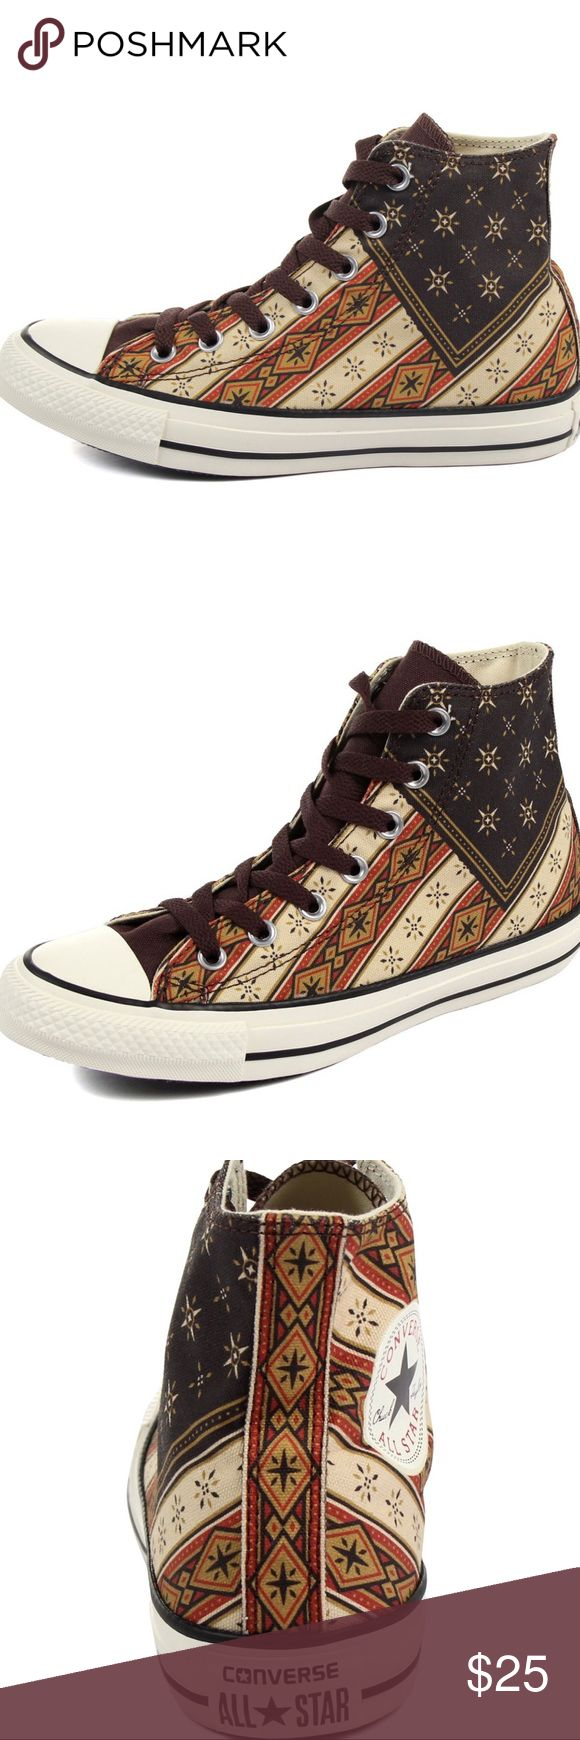 Converse Chuck Taylor Americana Bandana High Tops This is an awesome pair of Converse High Tops in Men's size 7/ Women's 9 in a super cool bandana print in shades of black, rust, chocolate brown, tan and oatmeal. These chucks have only been worn once and are in fantastic condition! One slight scuff on the left shoe at the toe (see pic). There is a discrepancy is the shade of the rubber. One seems whiter than the other for some reason and they came new this way. The difference is virtually…